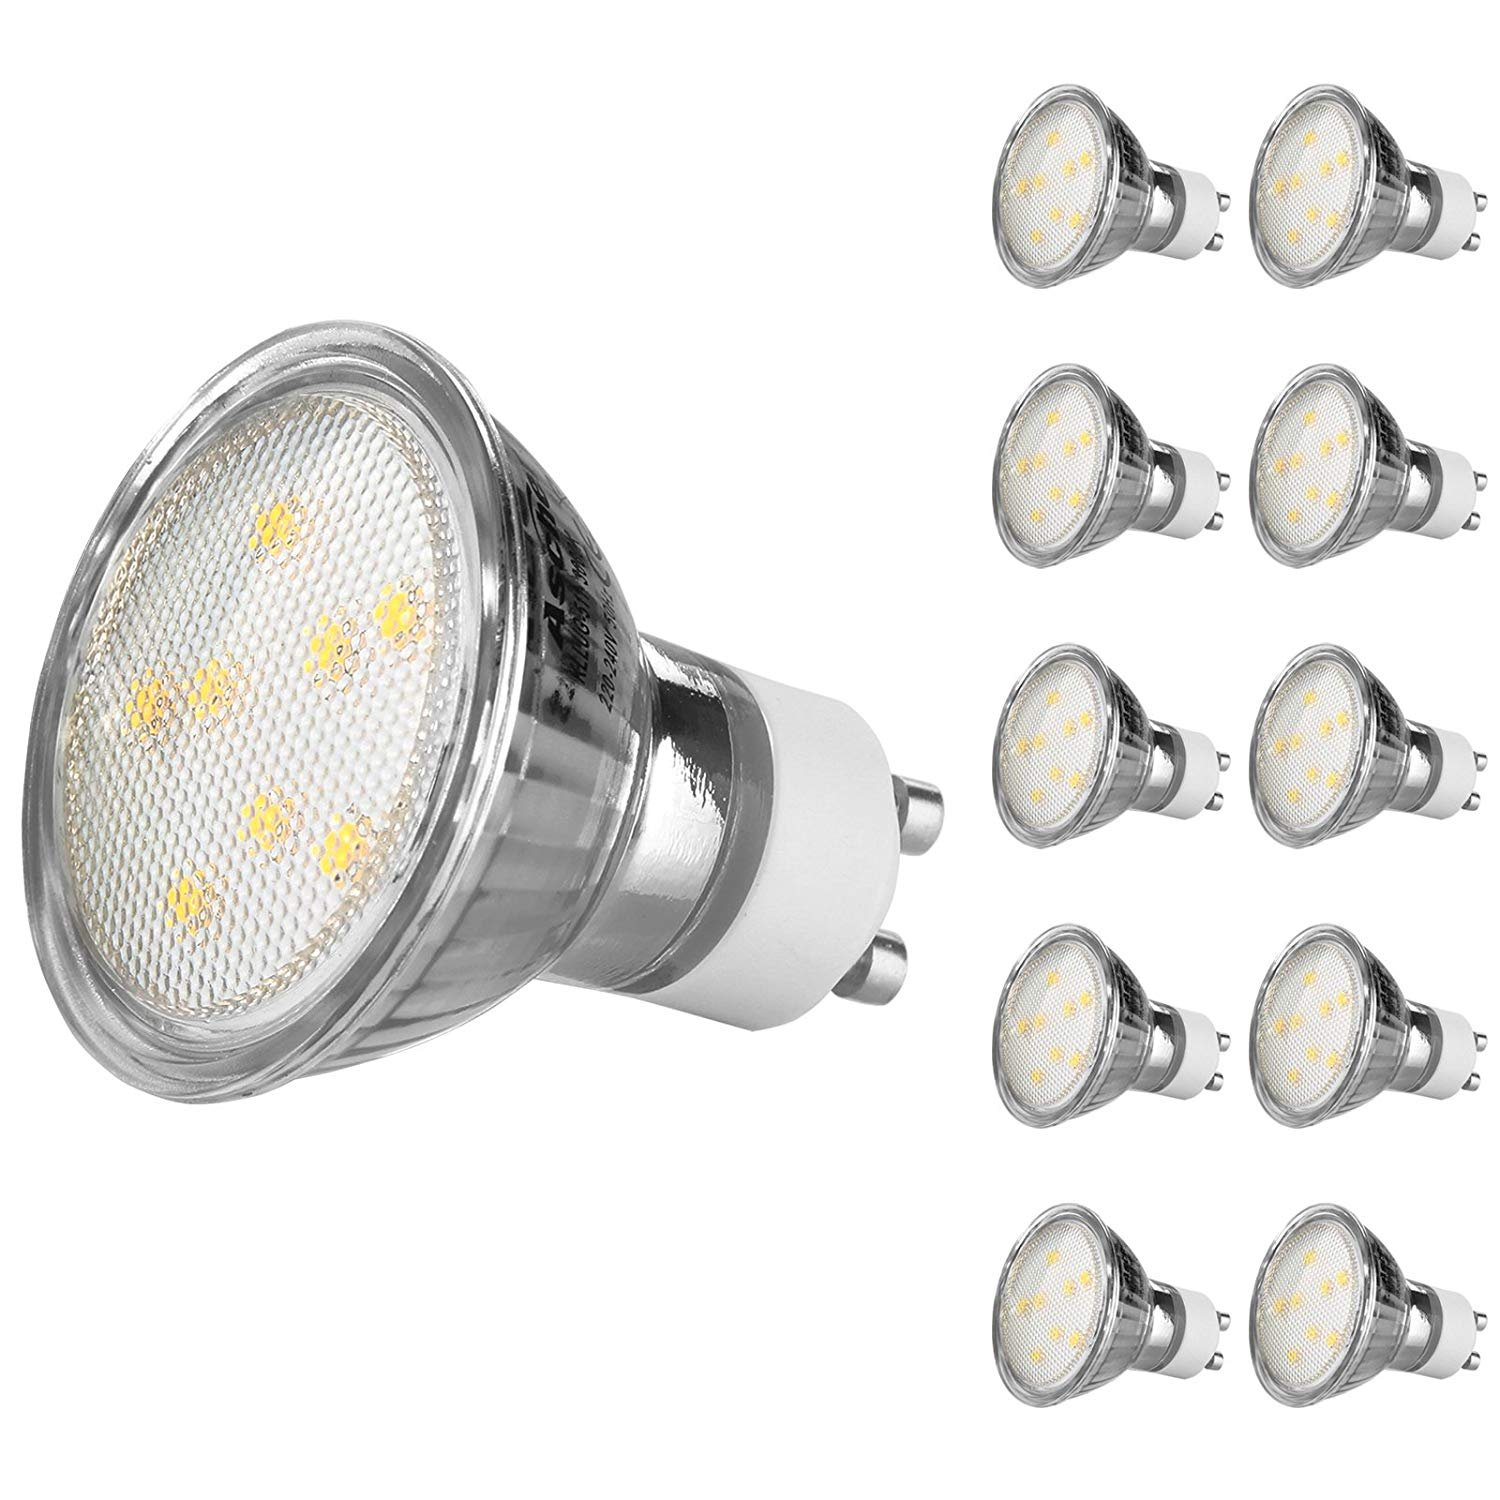 Gu10 4W Led Light Bulbs [Non Dimmable,Equivalent To 50W Halogen